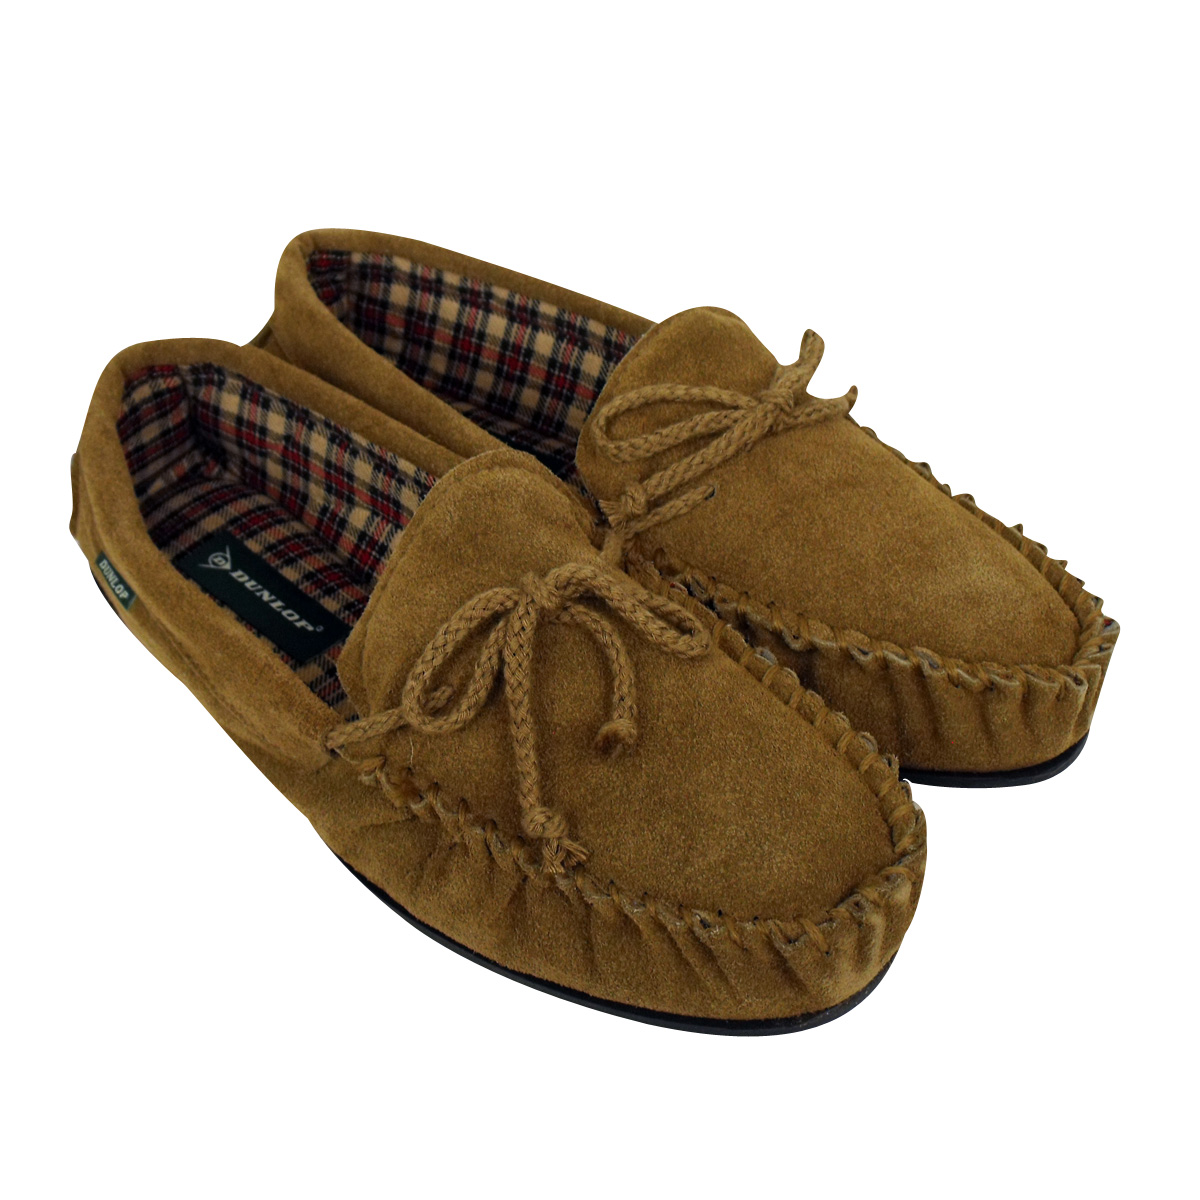 moccasin men Moccasins are a comfortable staple for many men and this style guide will show you how to wear them this season in style.